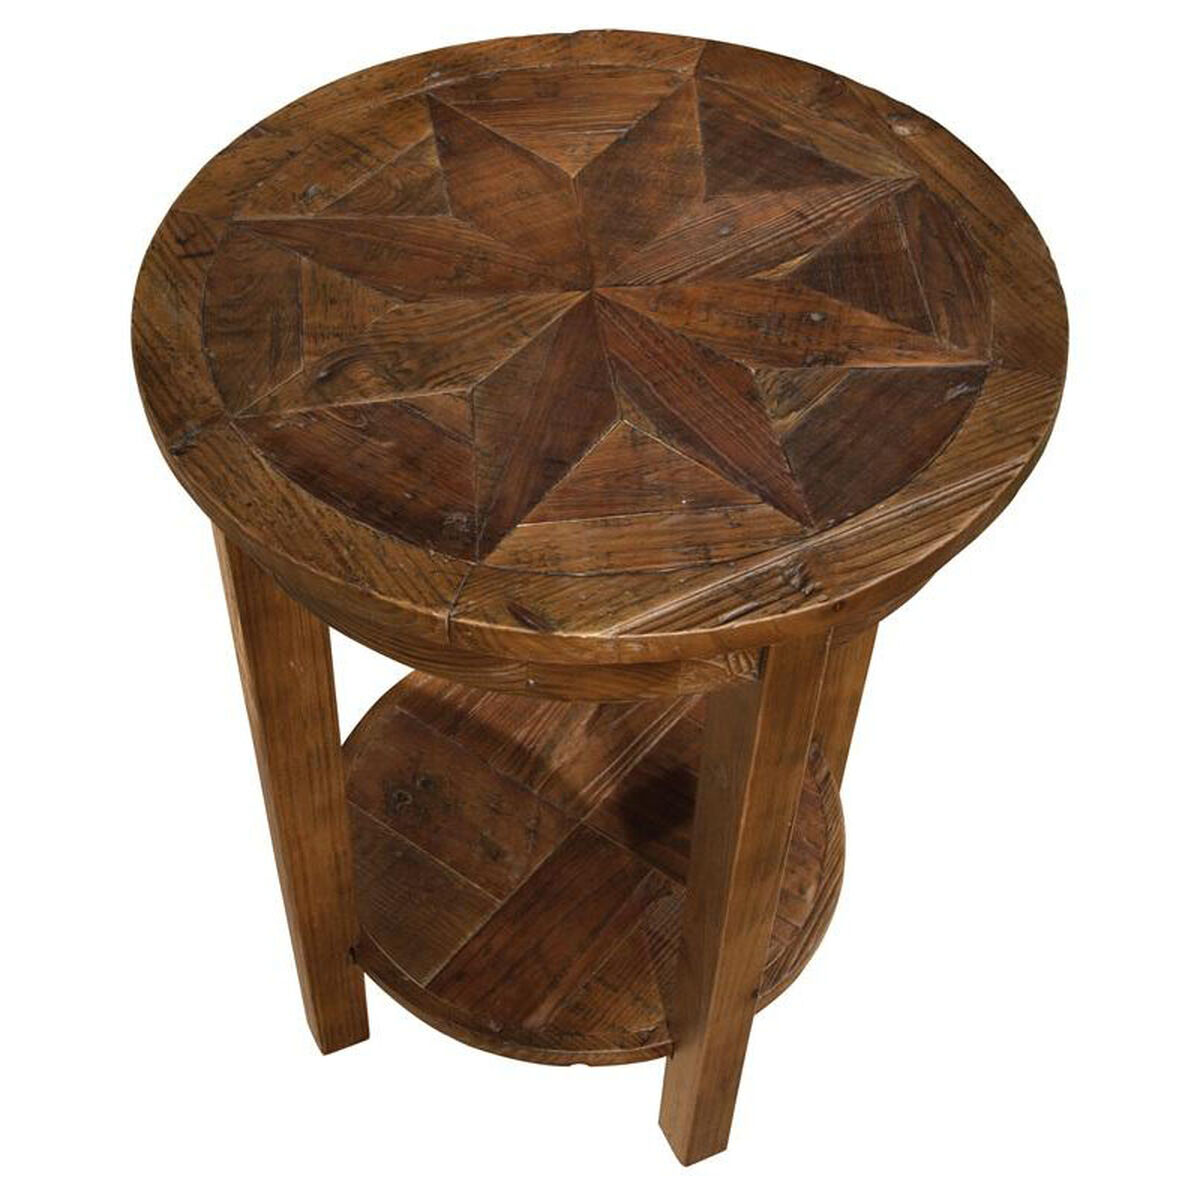 Our Revive Reclaimed Wood 20 Diameter Round End Table With Display Shelf Natural